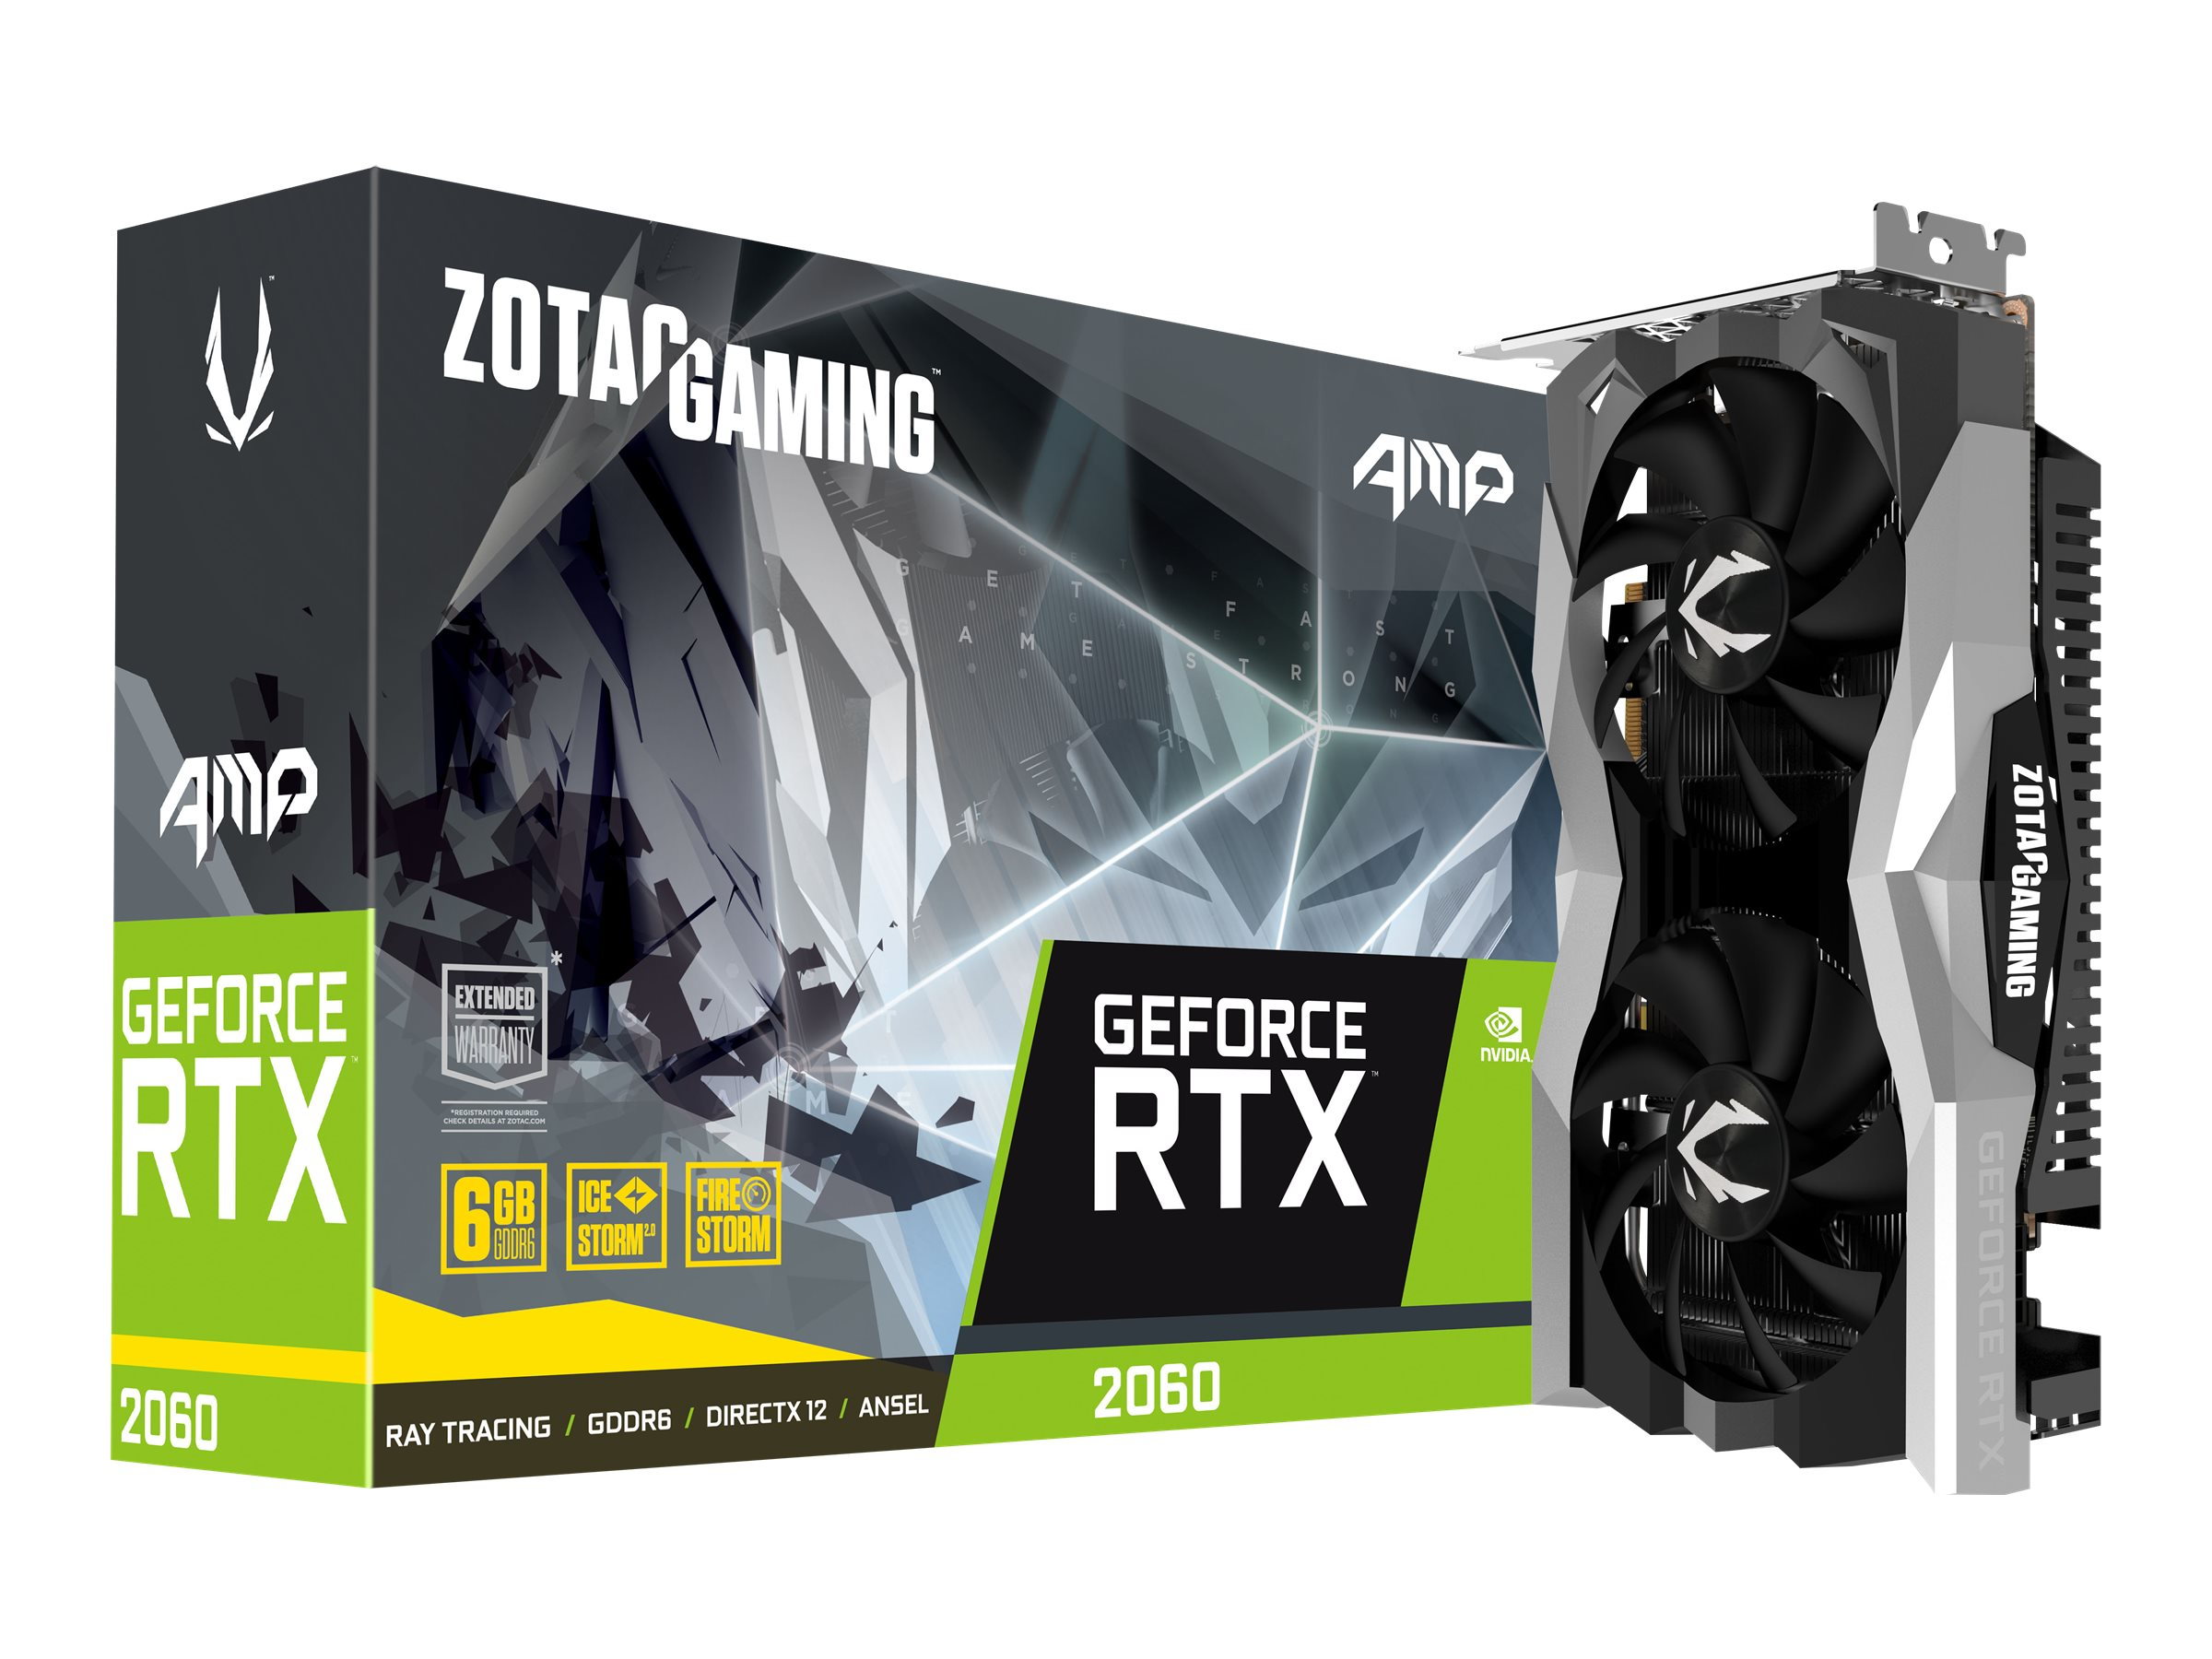 ZOTAC GAMING GeForce RTX 2060 AMP - graphics card - GF RTX 2060 - 6 GB